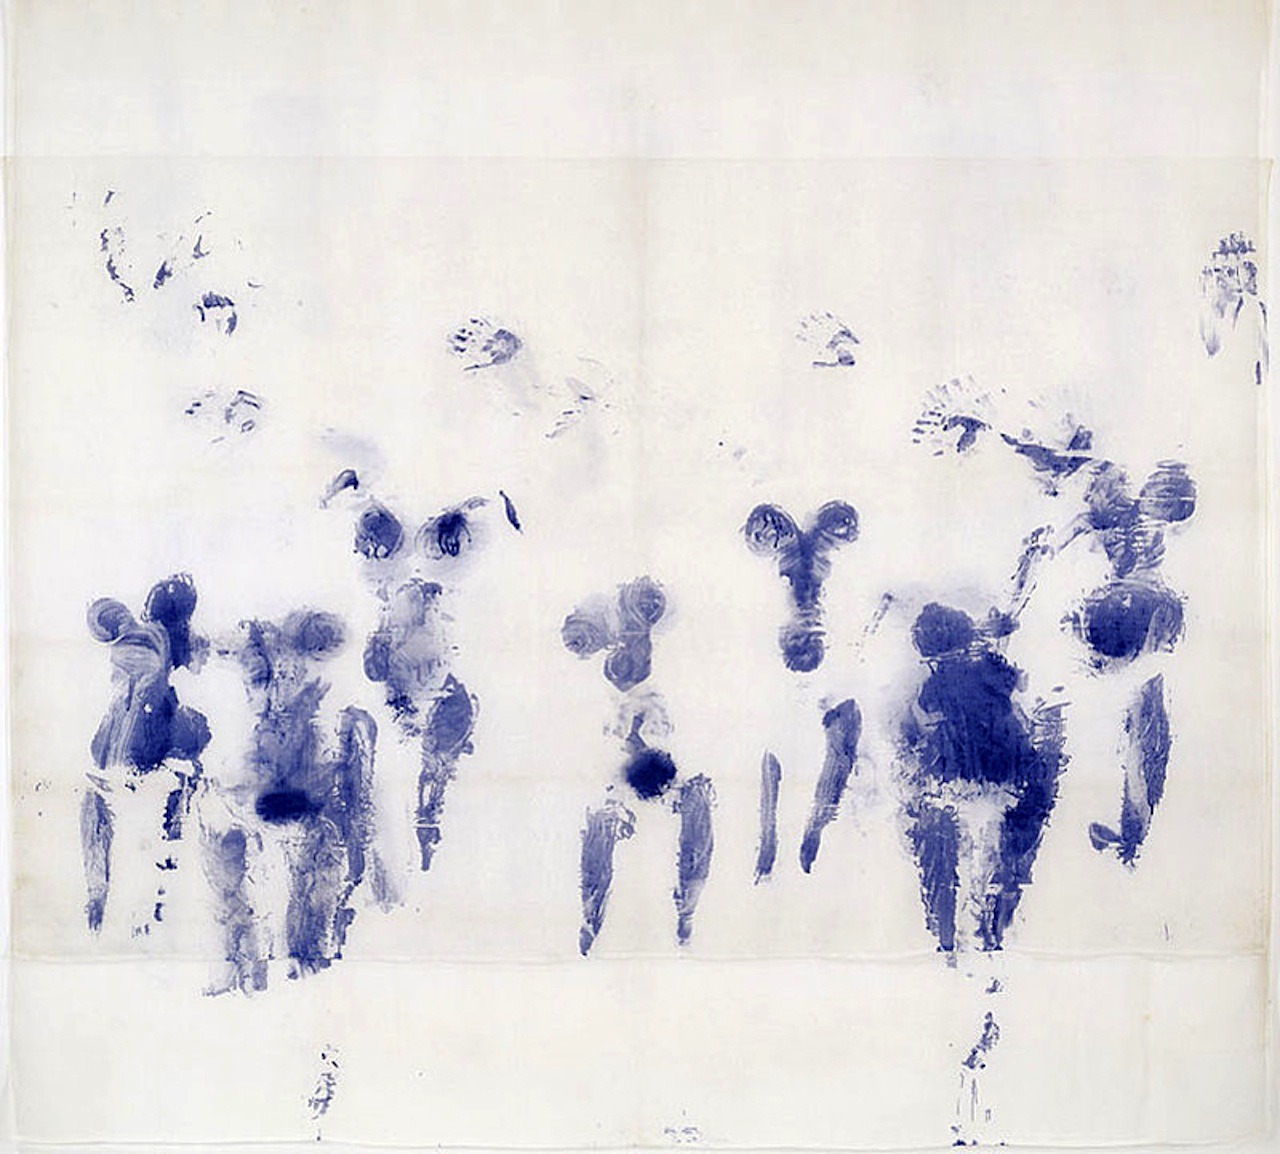 """Yves Klein, """"Suaire de Mondo Cane (Mondo Cane Shroud)"""" (1961) Dry pigment and synthetic resin on  gauze Collection Walker Art Center; Gift of Alexander Bing, T. B. Walker Foundation, Art Center Acquisition  Fund, Professional Art Group I and II, Mrs. Helen Haseltine Plowden, Dr. Alfred Pasternak, Dr. Maclyn C.  Wade, by exchange, with additional funds from T. B. Walker Acquisition Fund, 2004; © 2010 Artists  Rights Society (ARS), New York/ADAGP, Paris"""